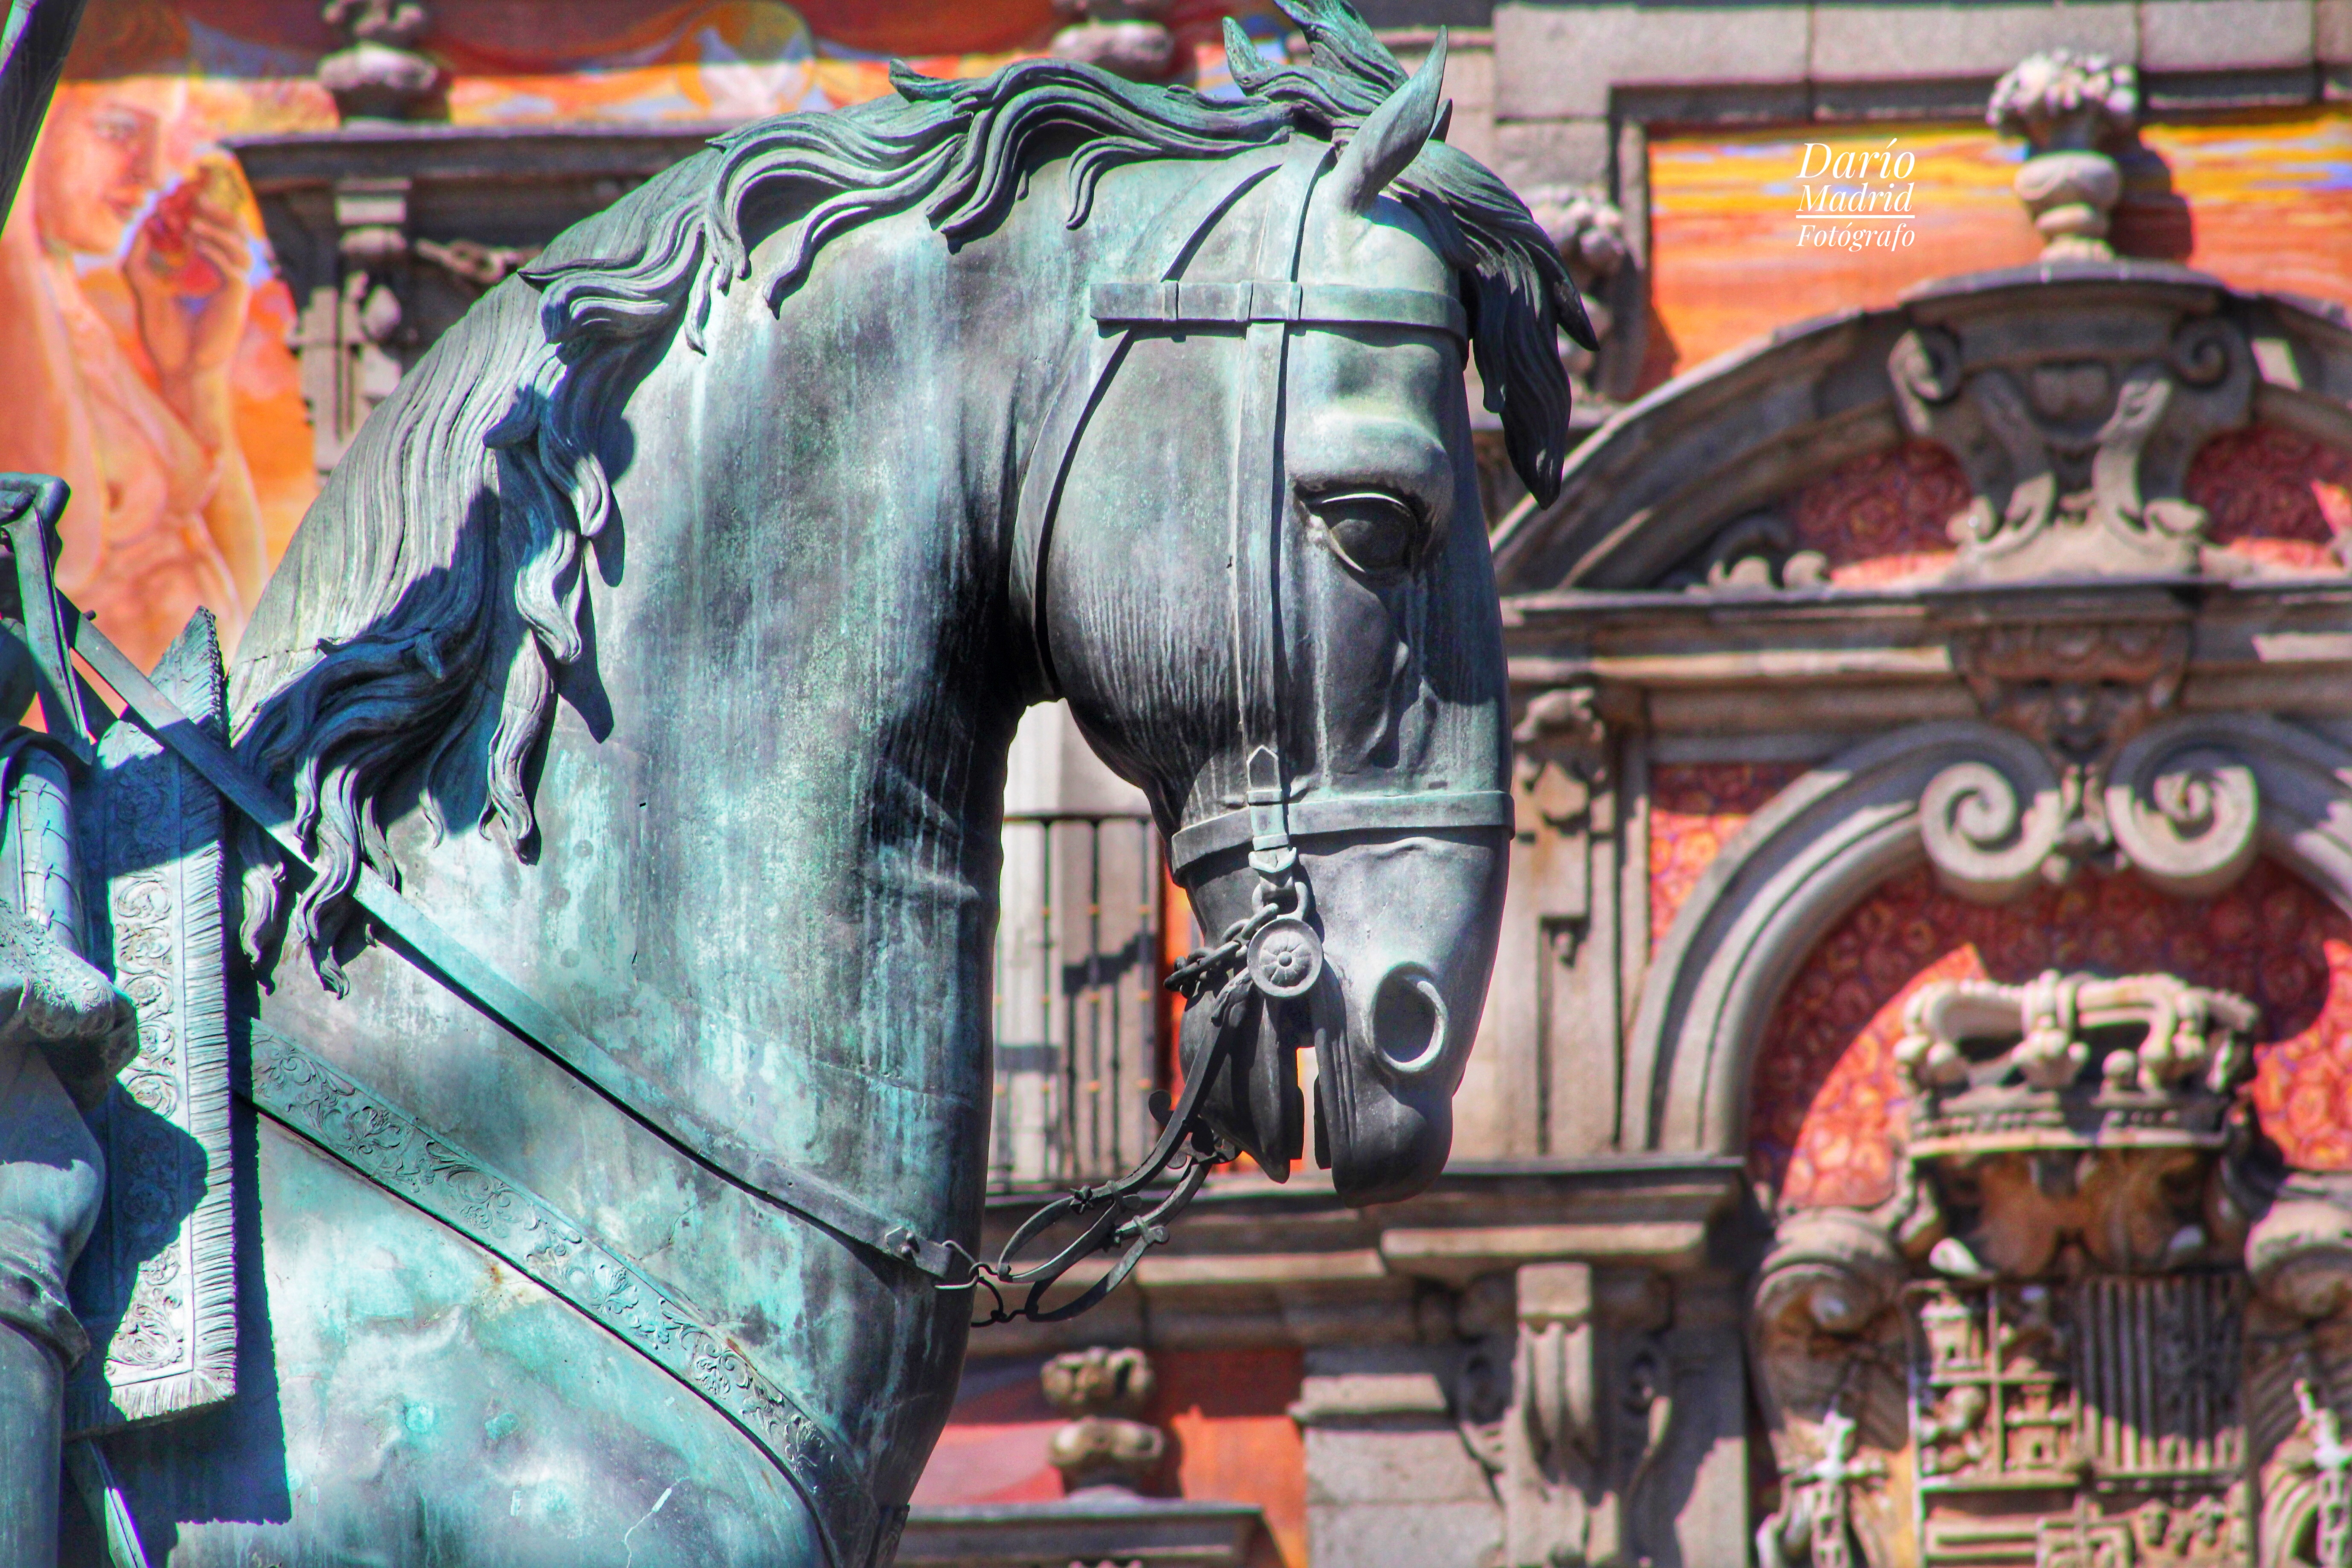 Caballo de la Estatua de Felipe III de la Plaza Mayor de Madrid